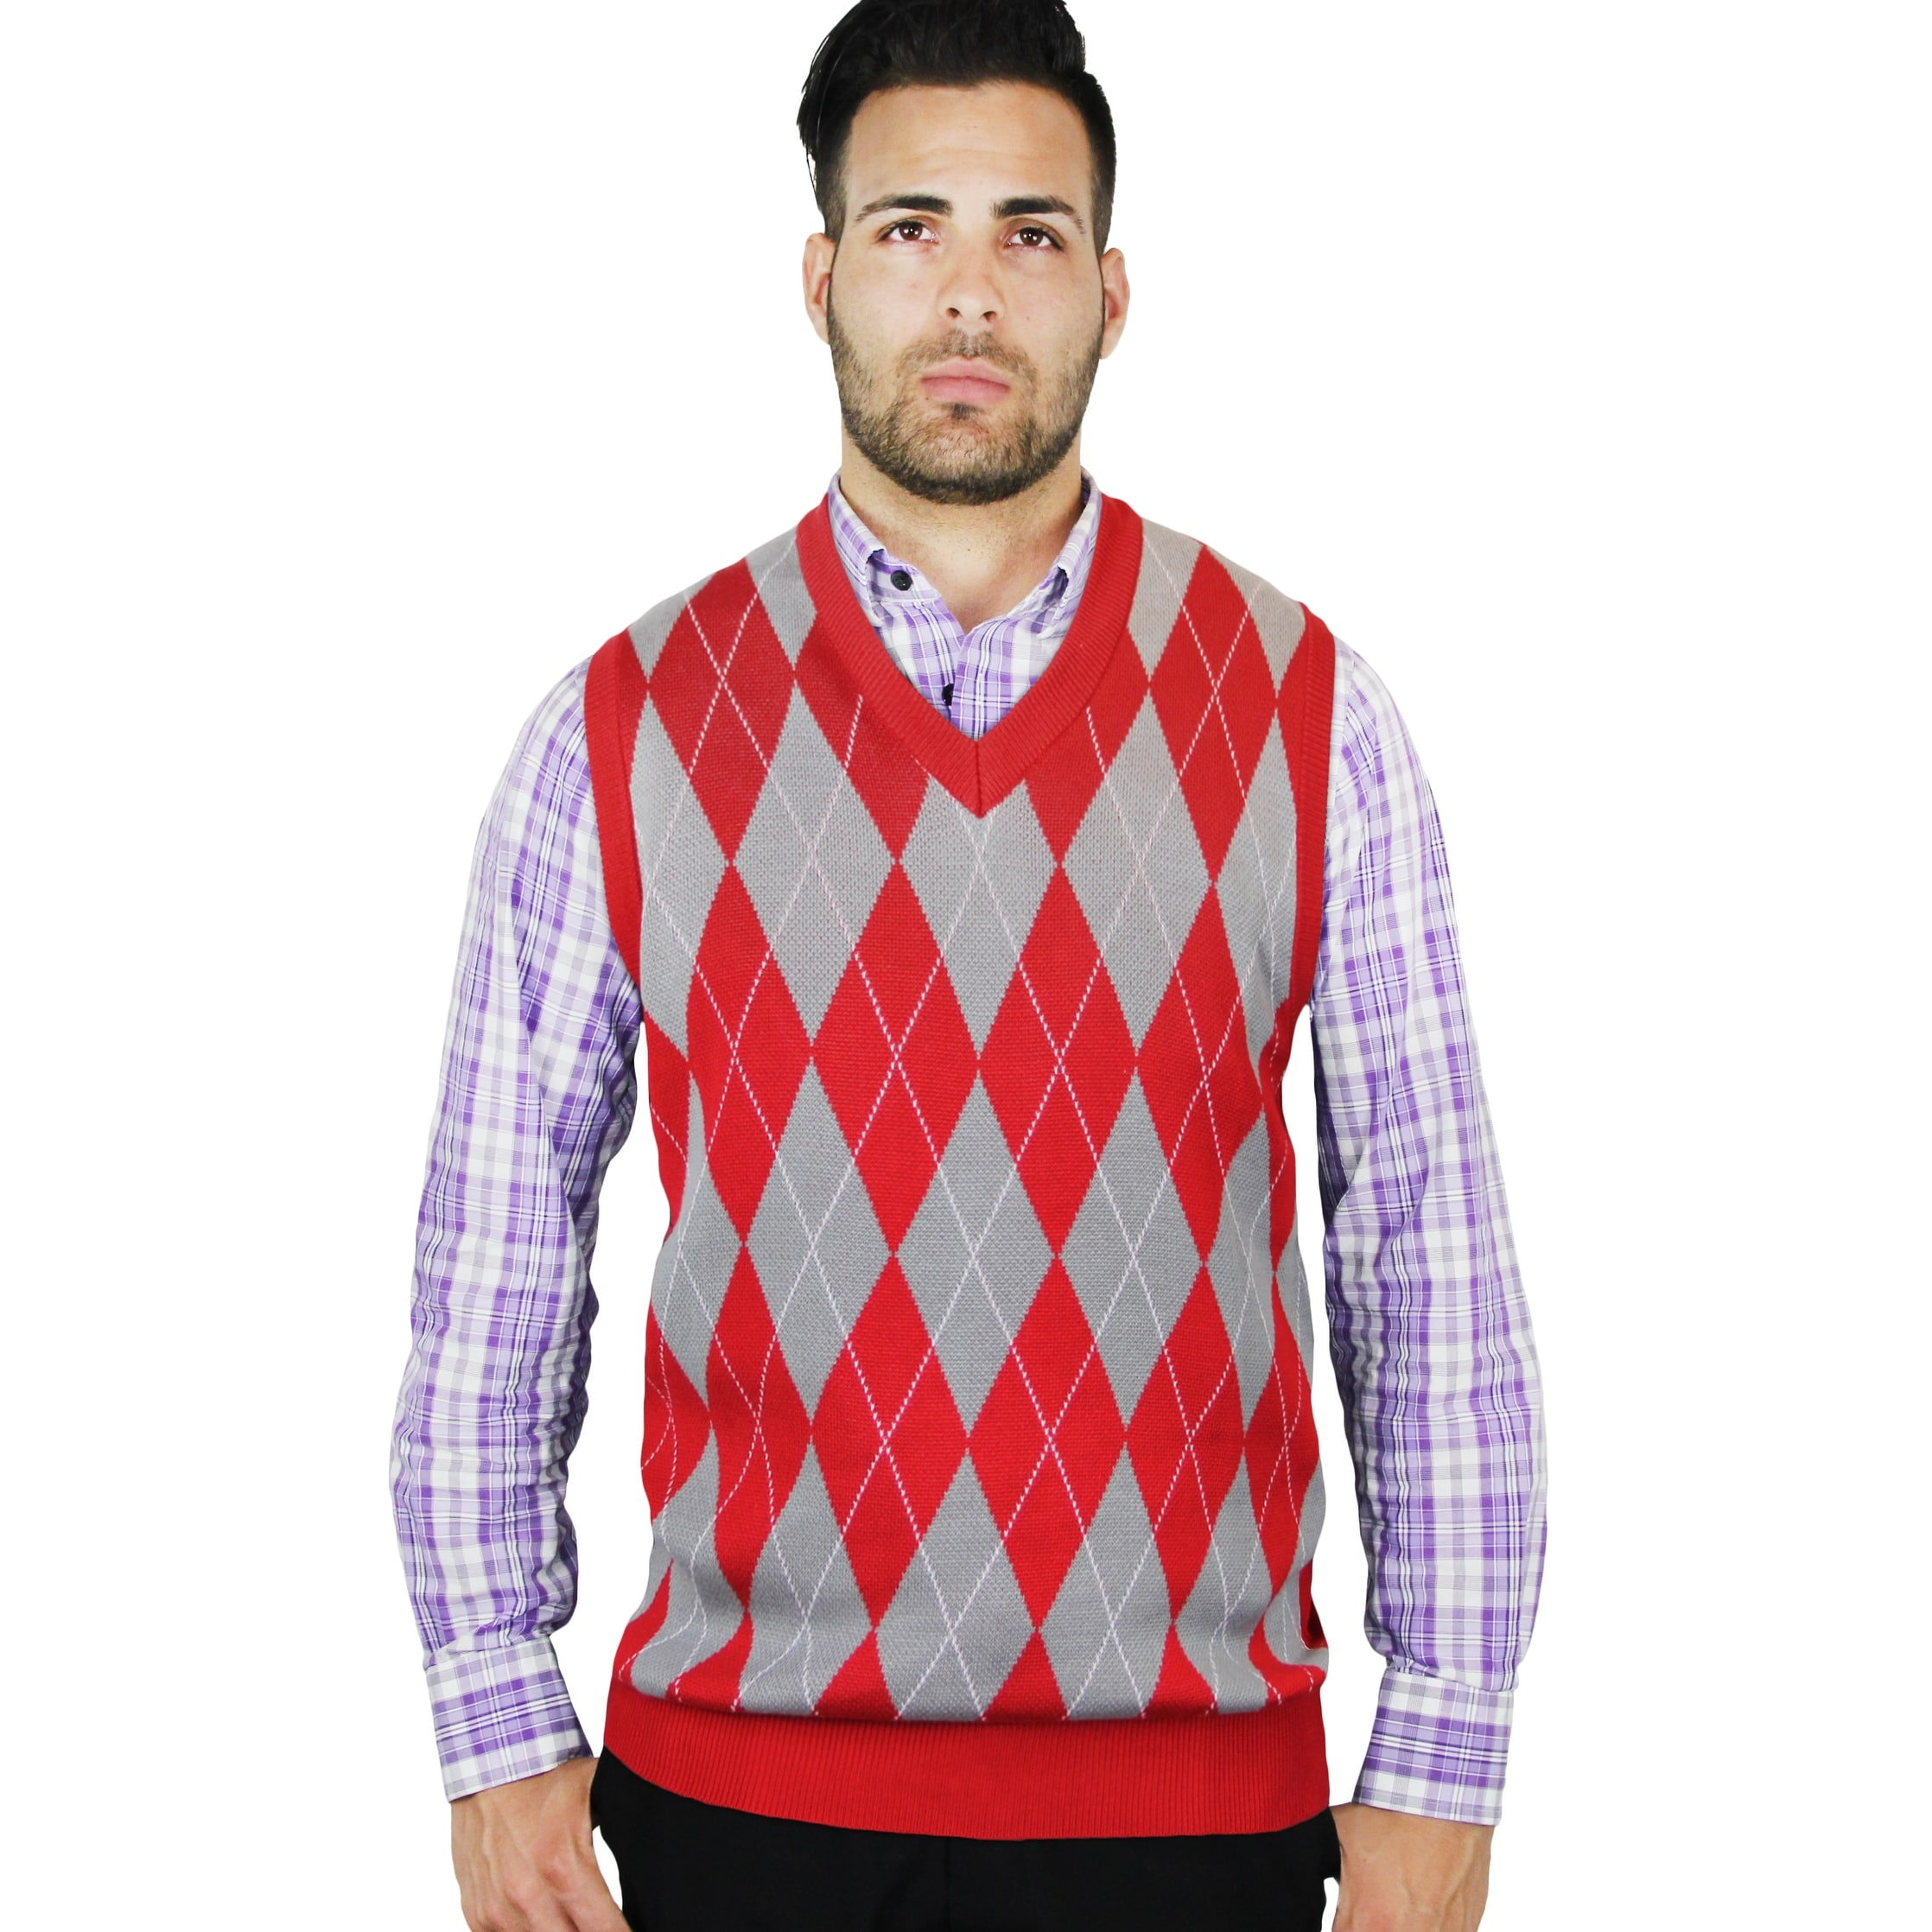 9594443ba Shop Men s Jacquard Argyle Sweater Vest (SV-245) - Free Shipping On ...